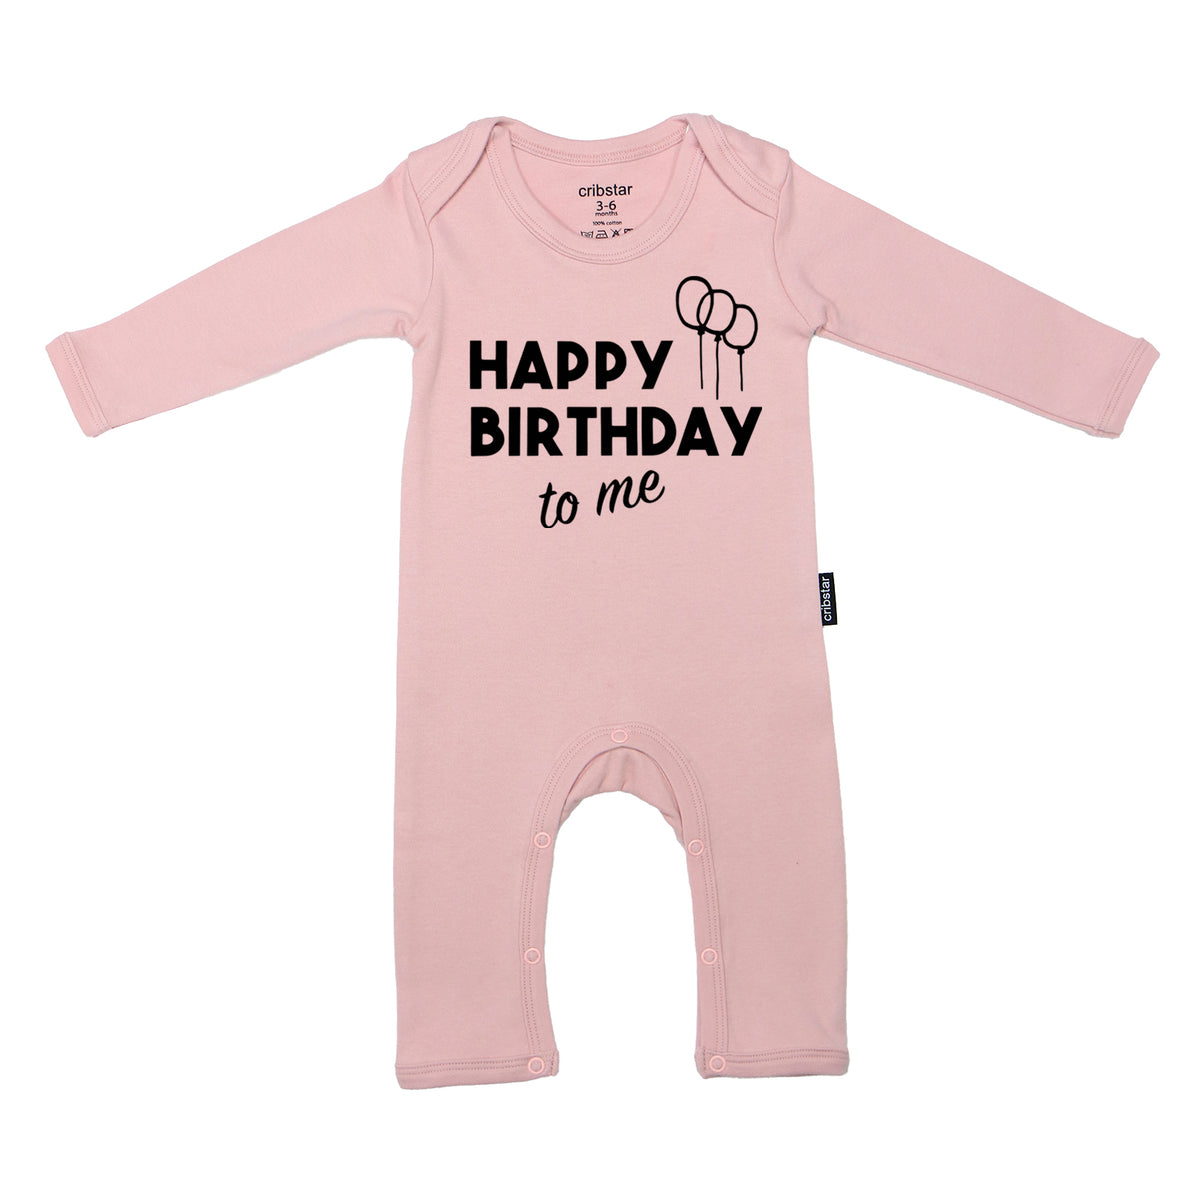 8ffd8948a9f Happy Birthday To Me Baby Romper – cribstar